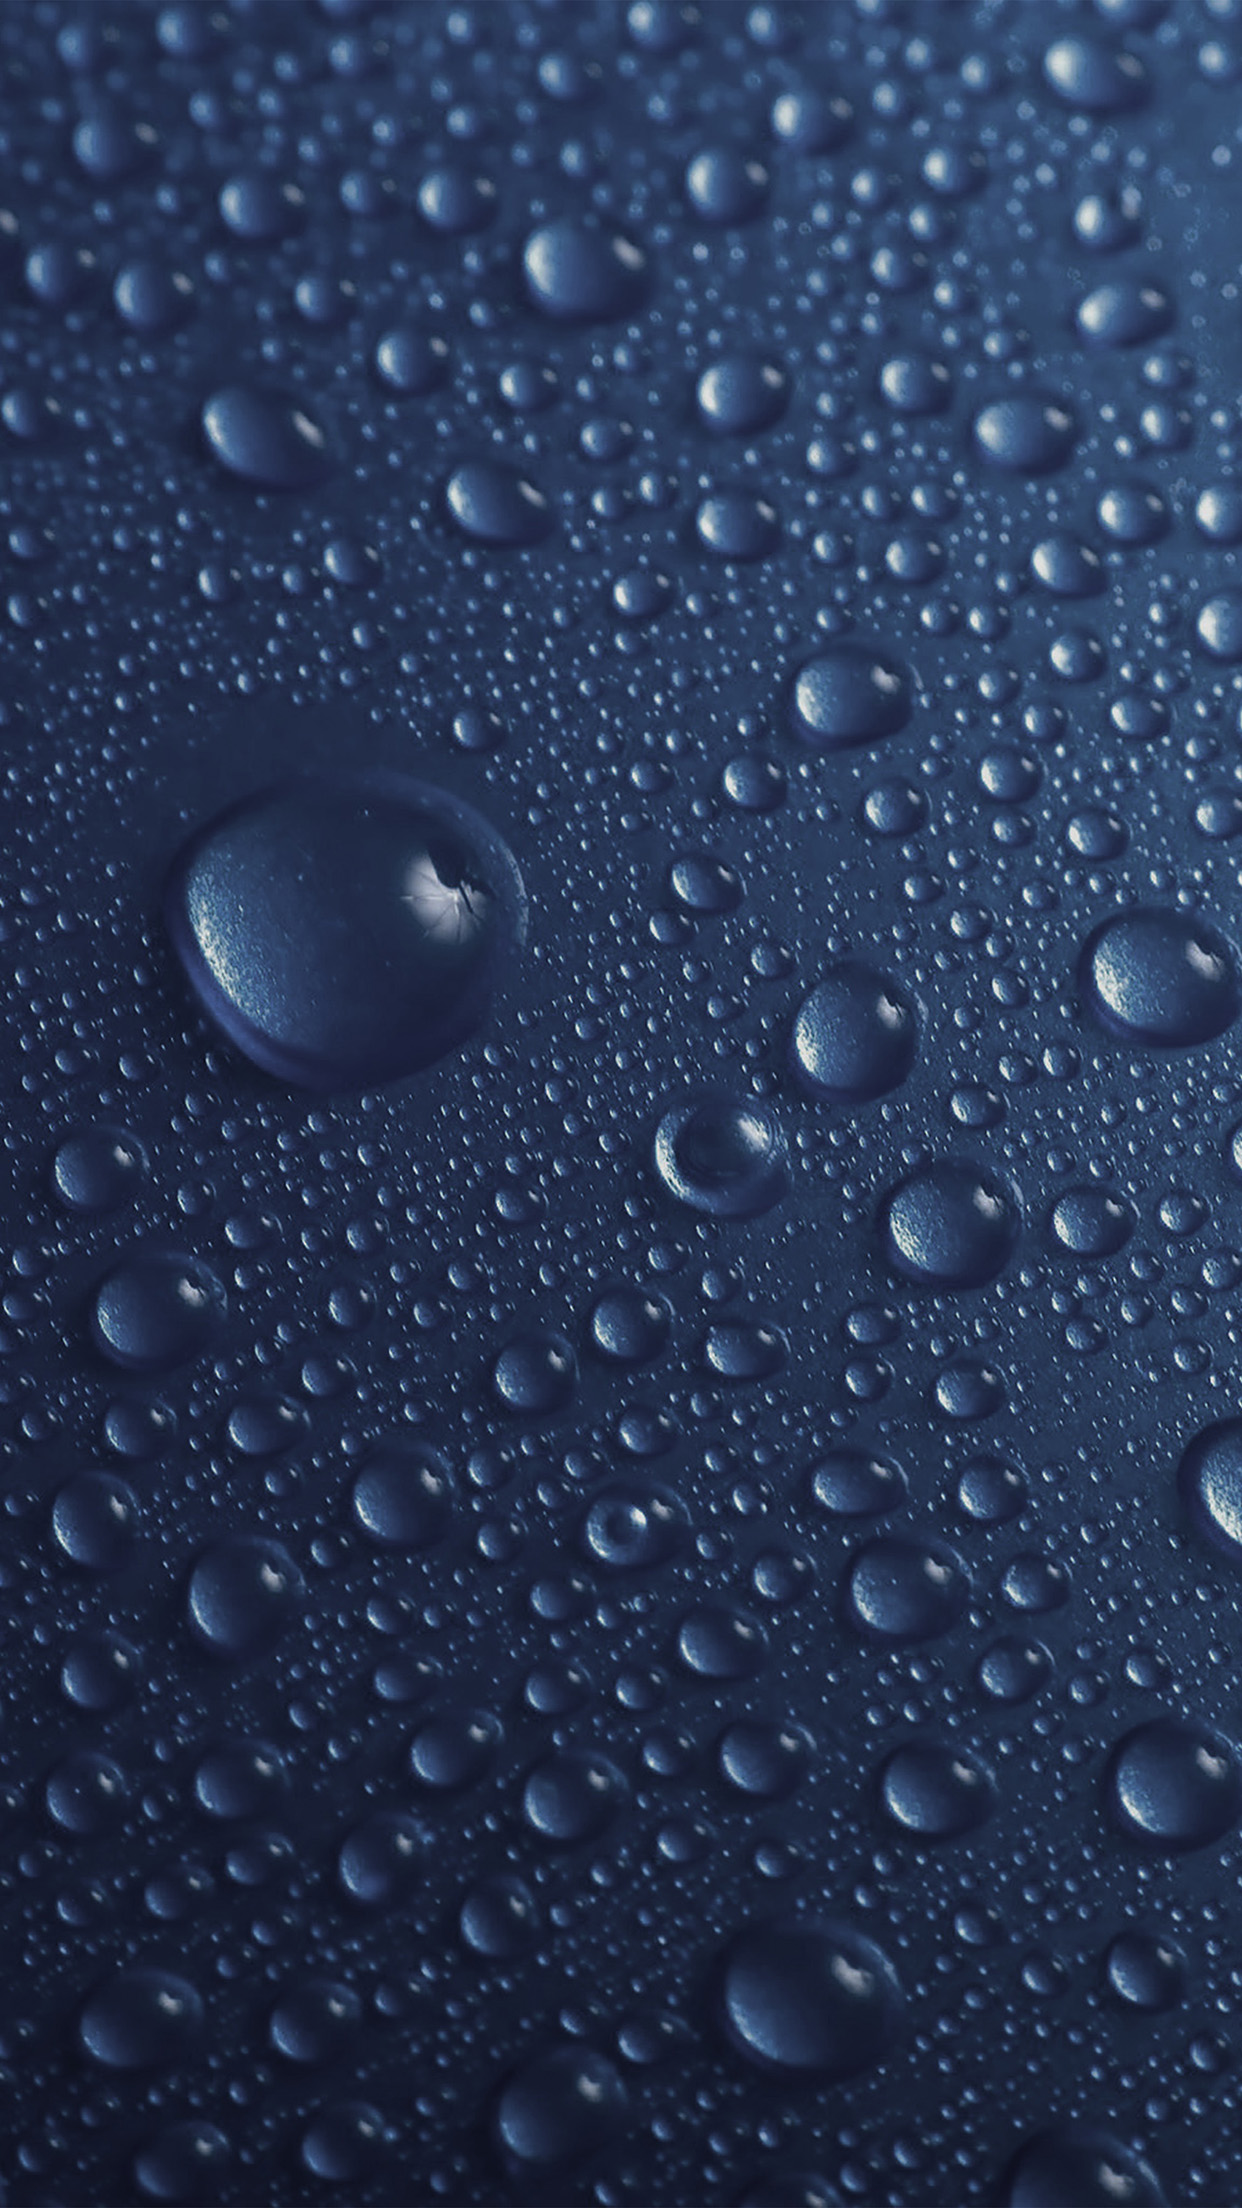 Papers Co Iphone Wallpaper Vr31 Rain Drop Blue Water Sad